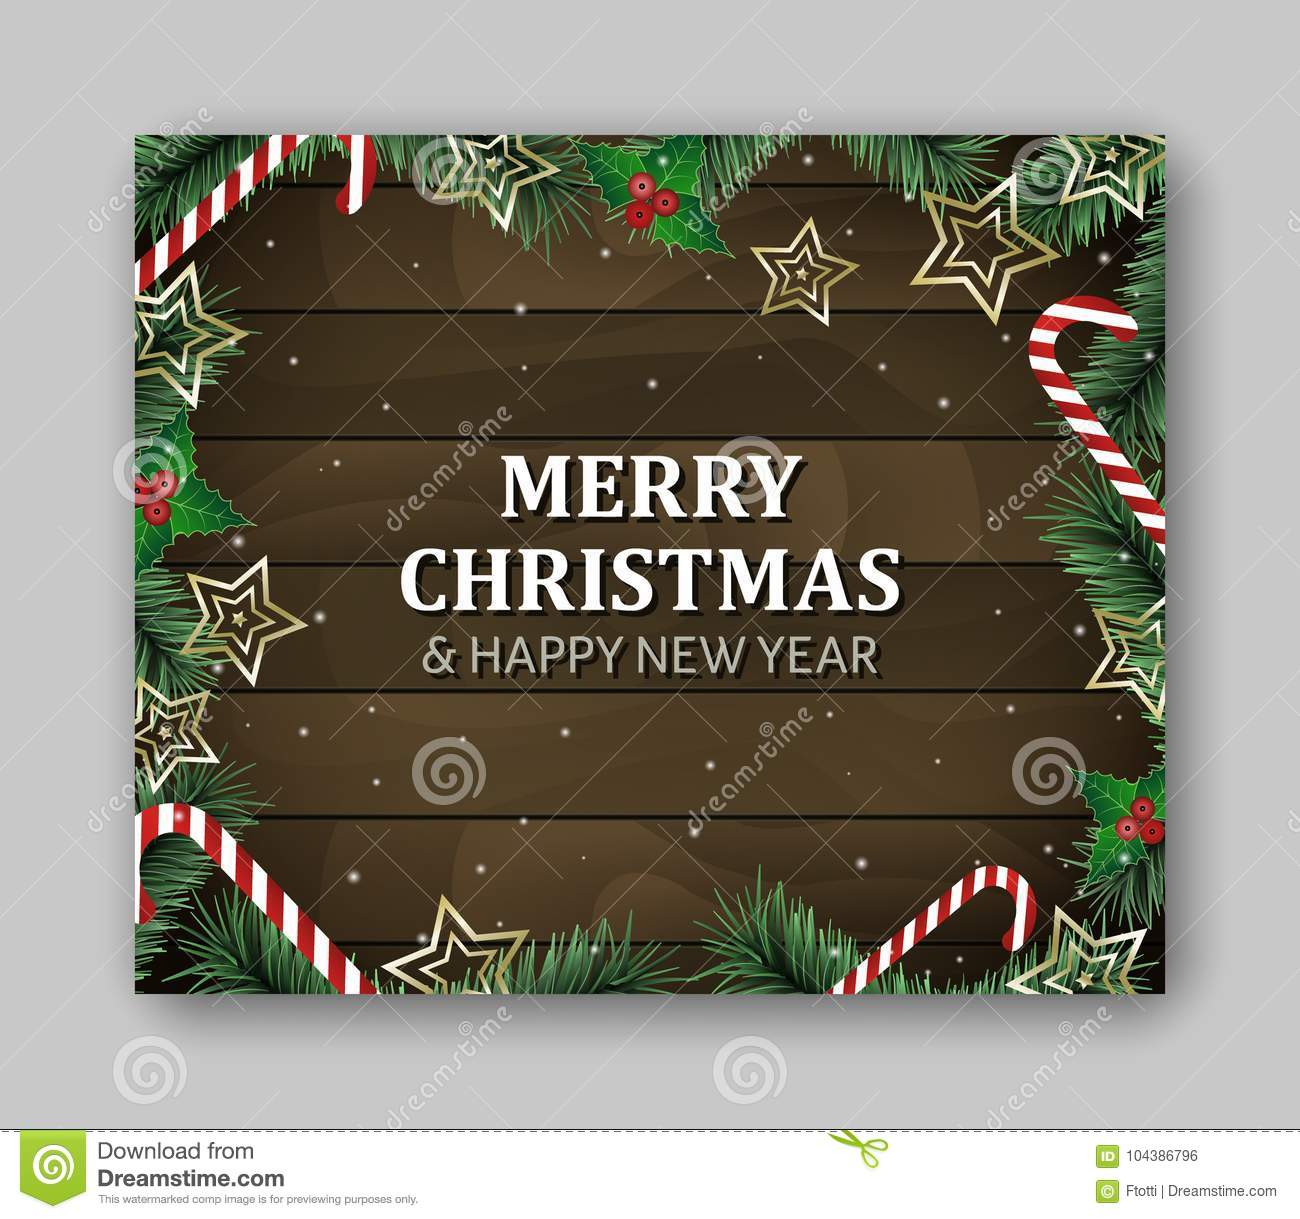 banner template large rectangle with merry christmas and happy new year lettering green branches